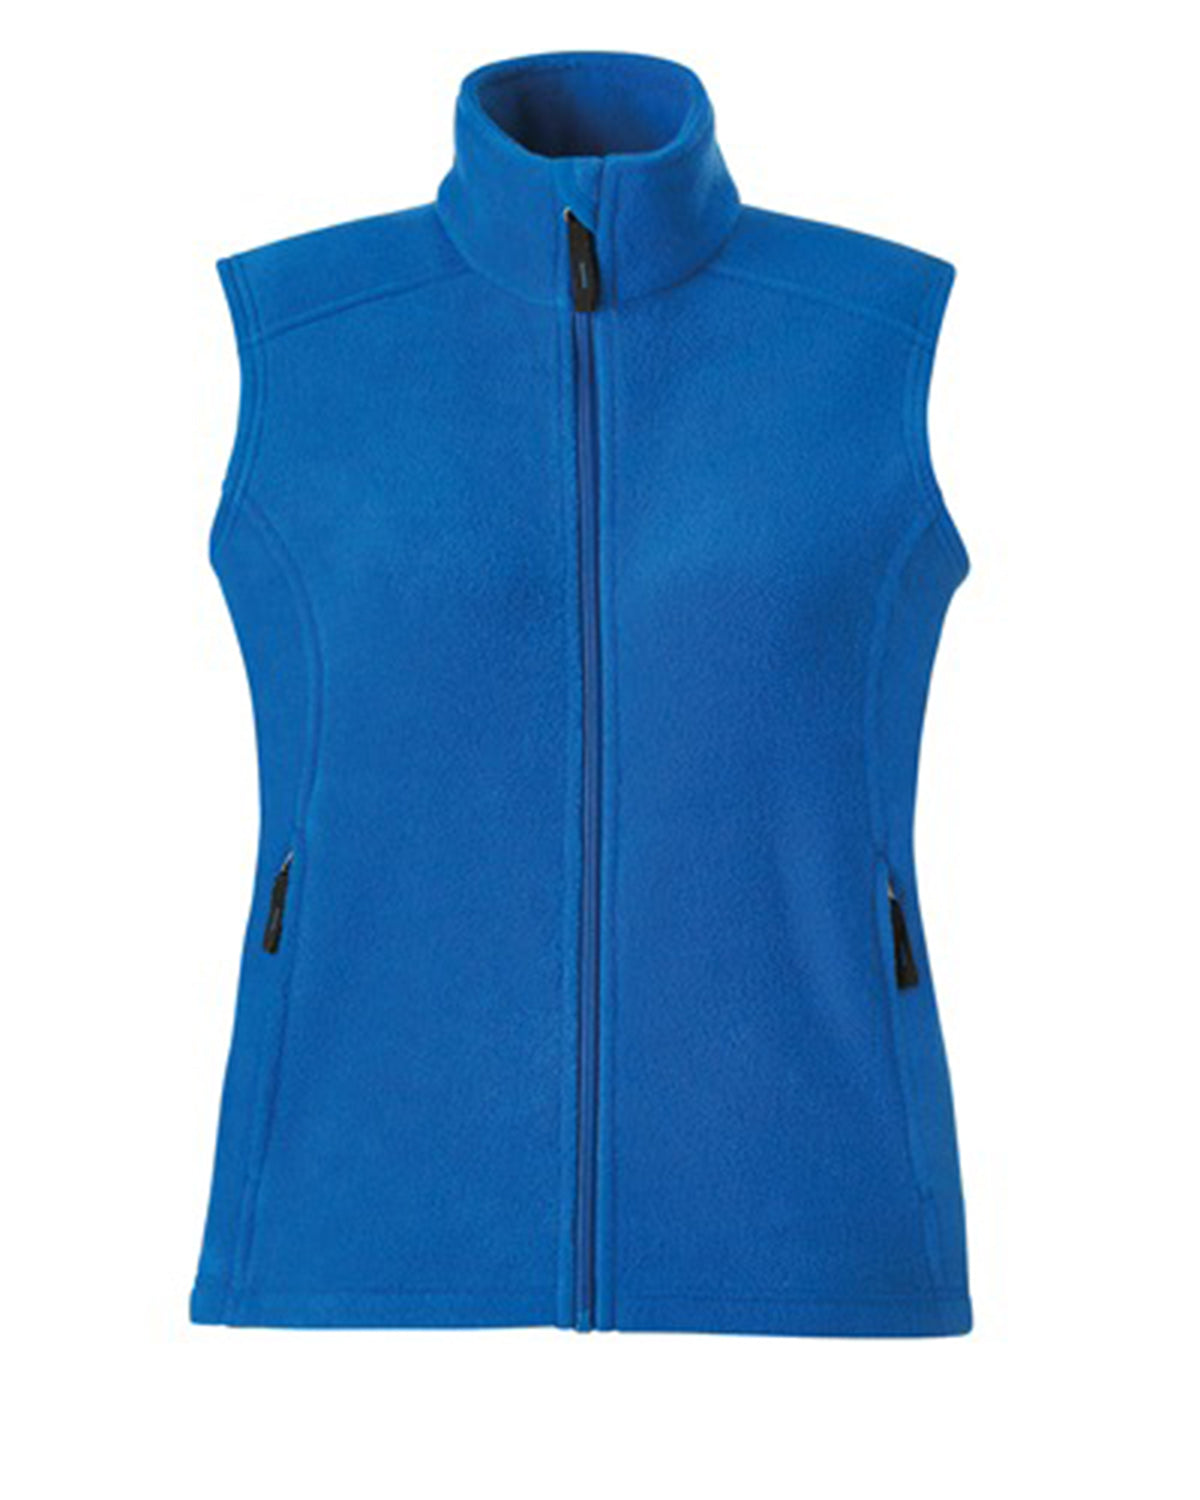 CORE 365 LADIES JOURNEY FLEECE VEST